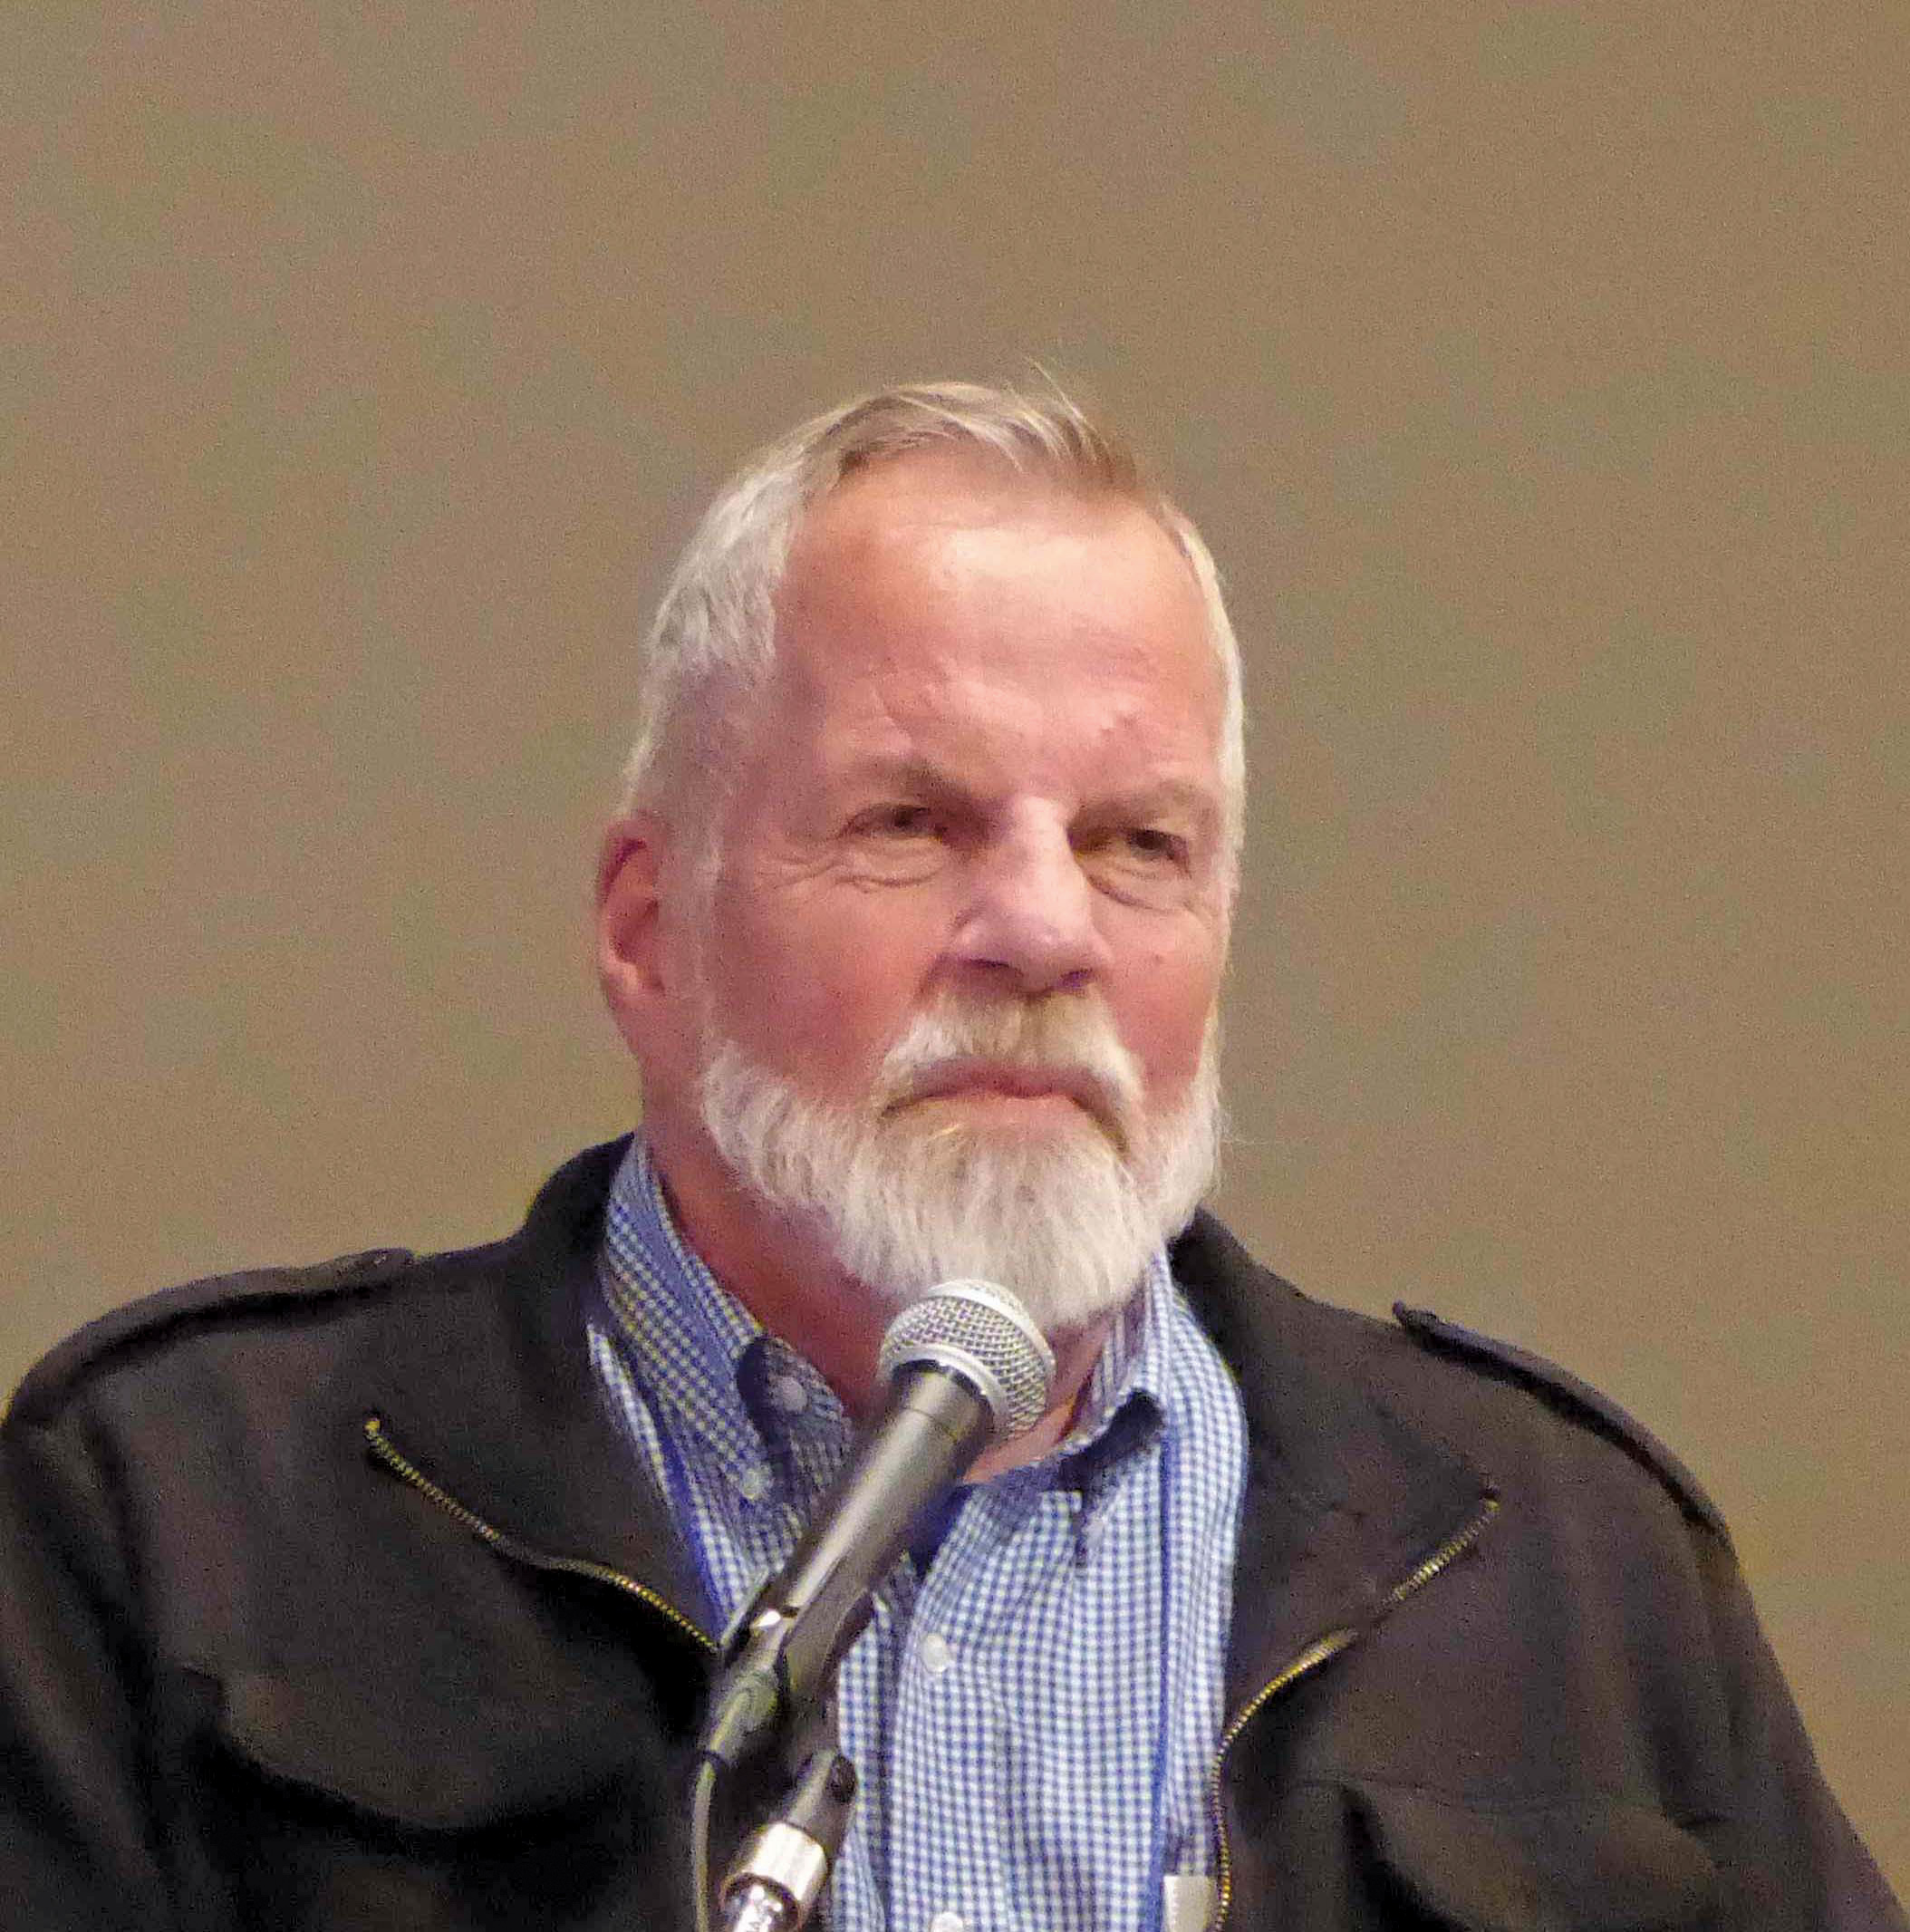 Obituary On D Richard Dick Blidberg The Ieee Oceanic Engineering Society